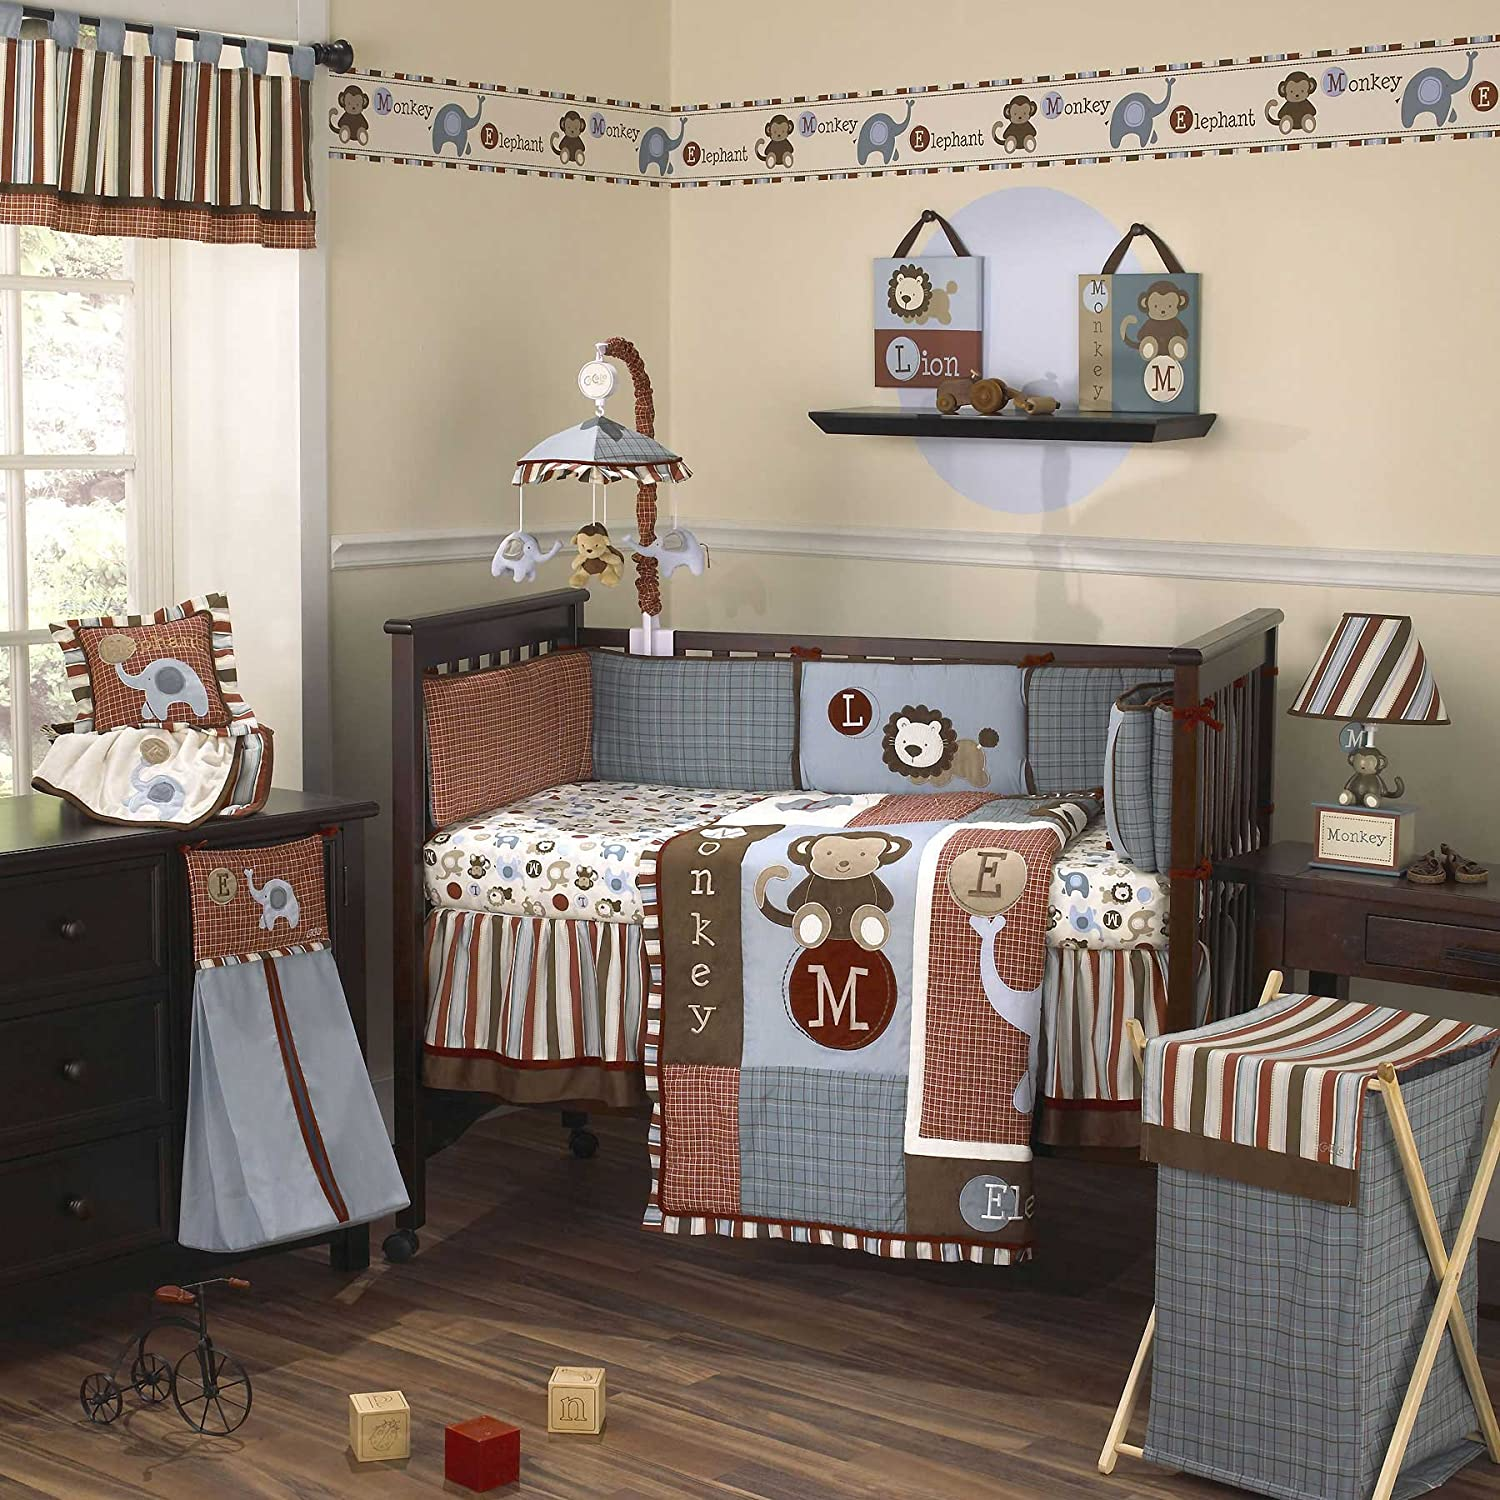 Boy Nursery Bedding. Make your son's nursery as cute as he is with the Pottery Barn Kids collection of boy nursery bedding. We have a variety of styles and patterns to choose from, so you're sure to find a set that matches the theme or color scheme you're interested in using.